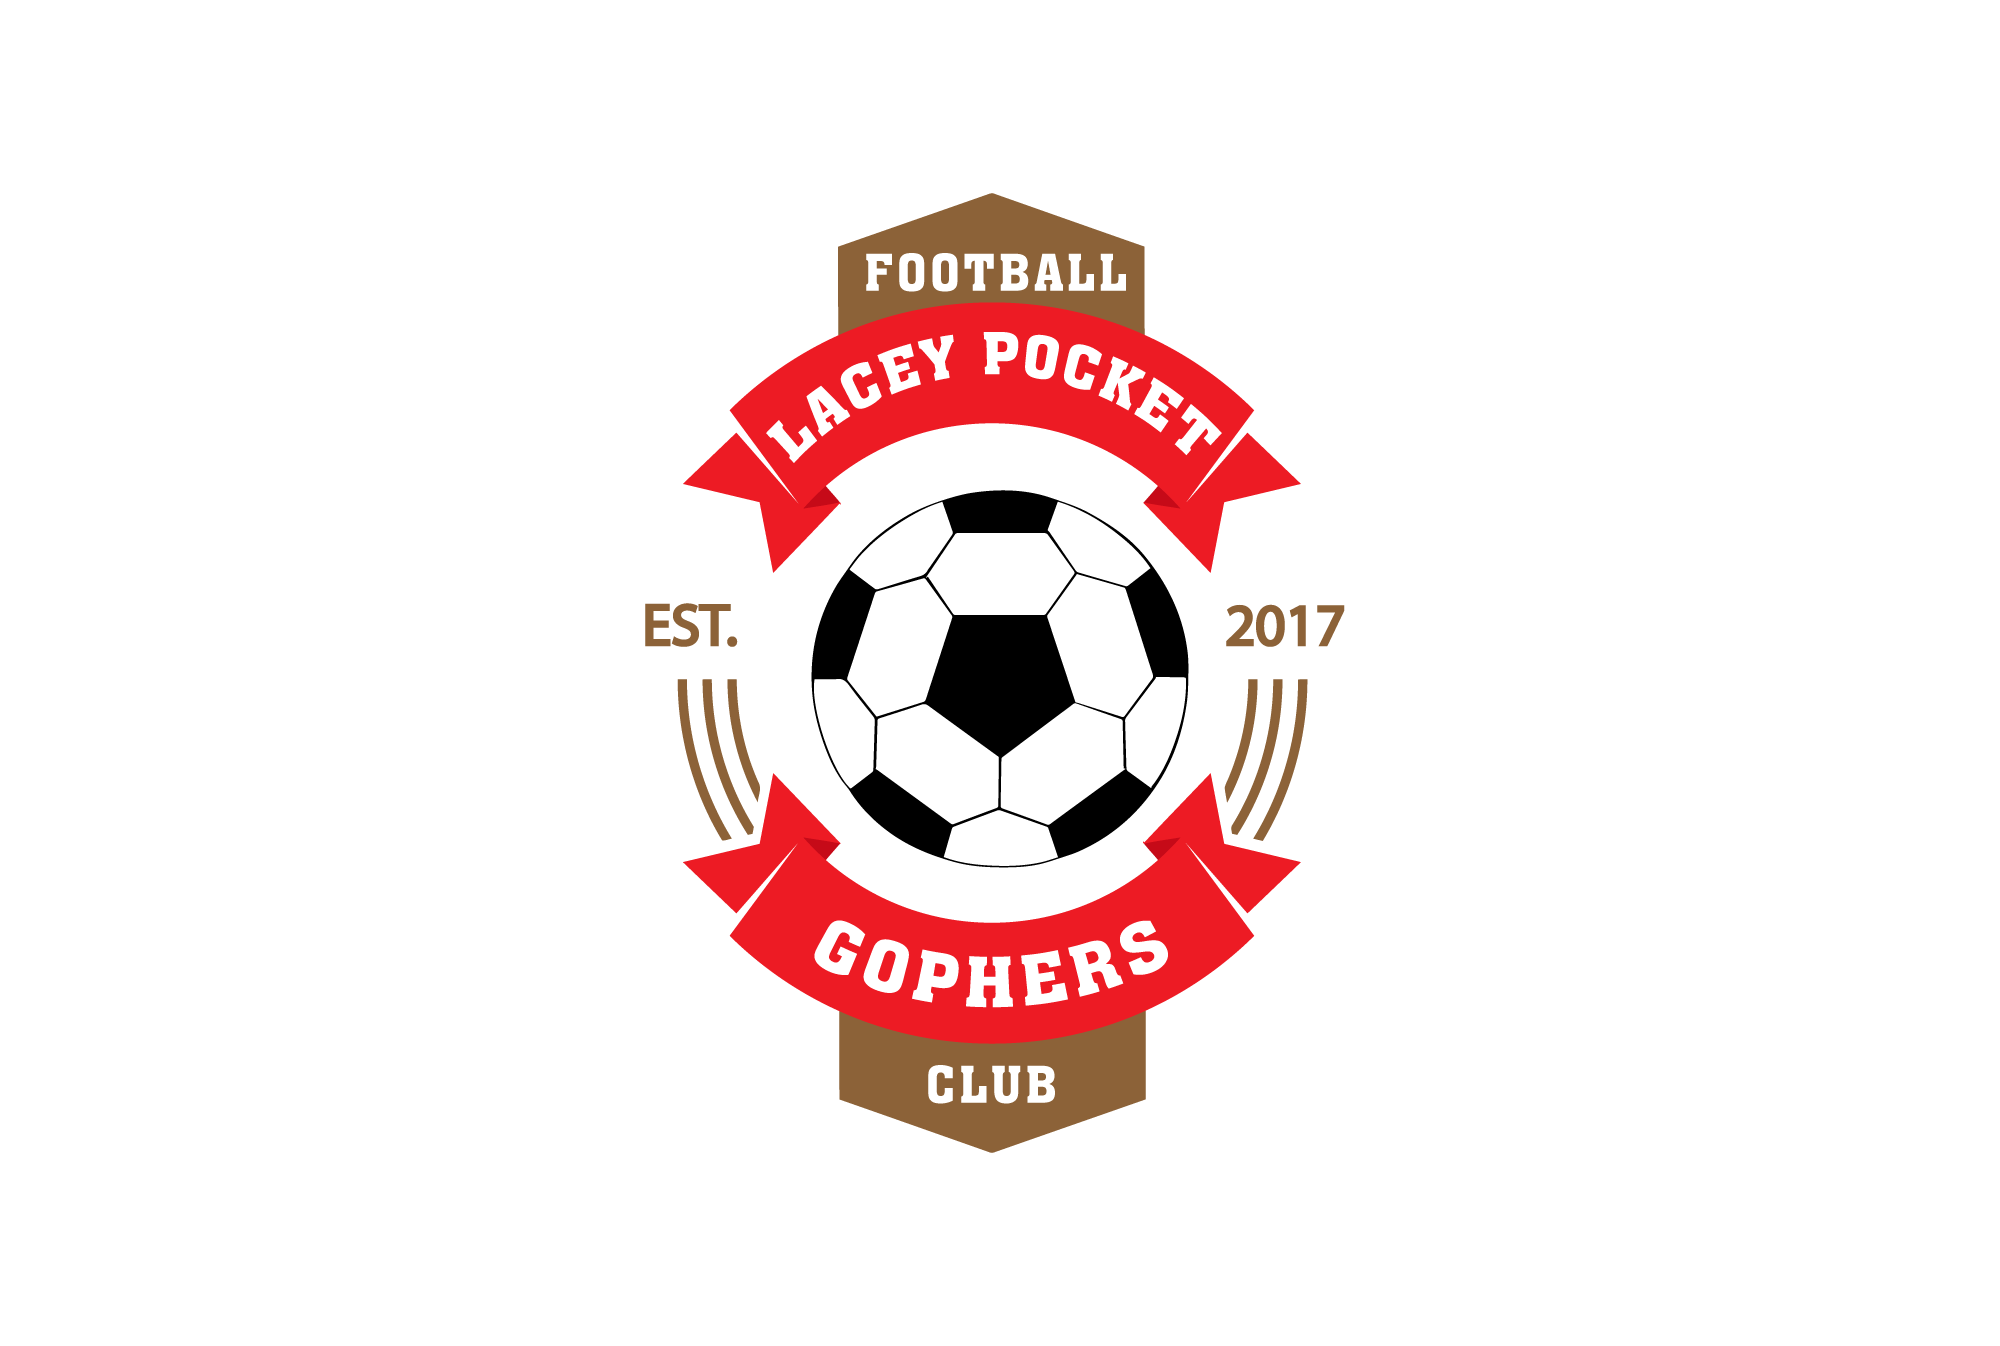 Lacey Pocket Gophers vs Grays Harbor SOCCER - Events - Universe